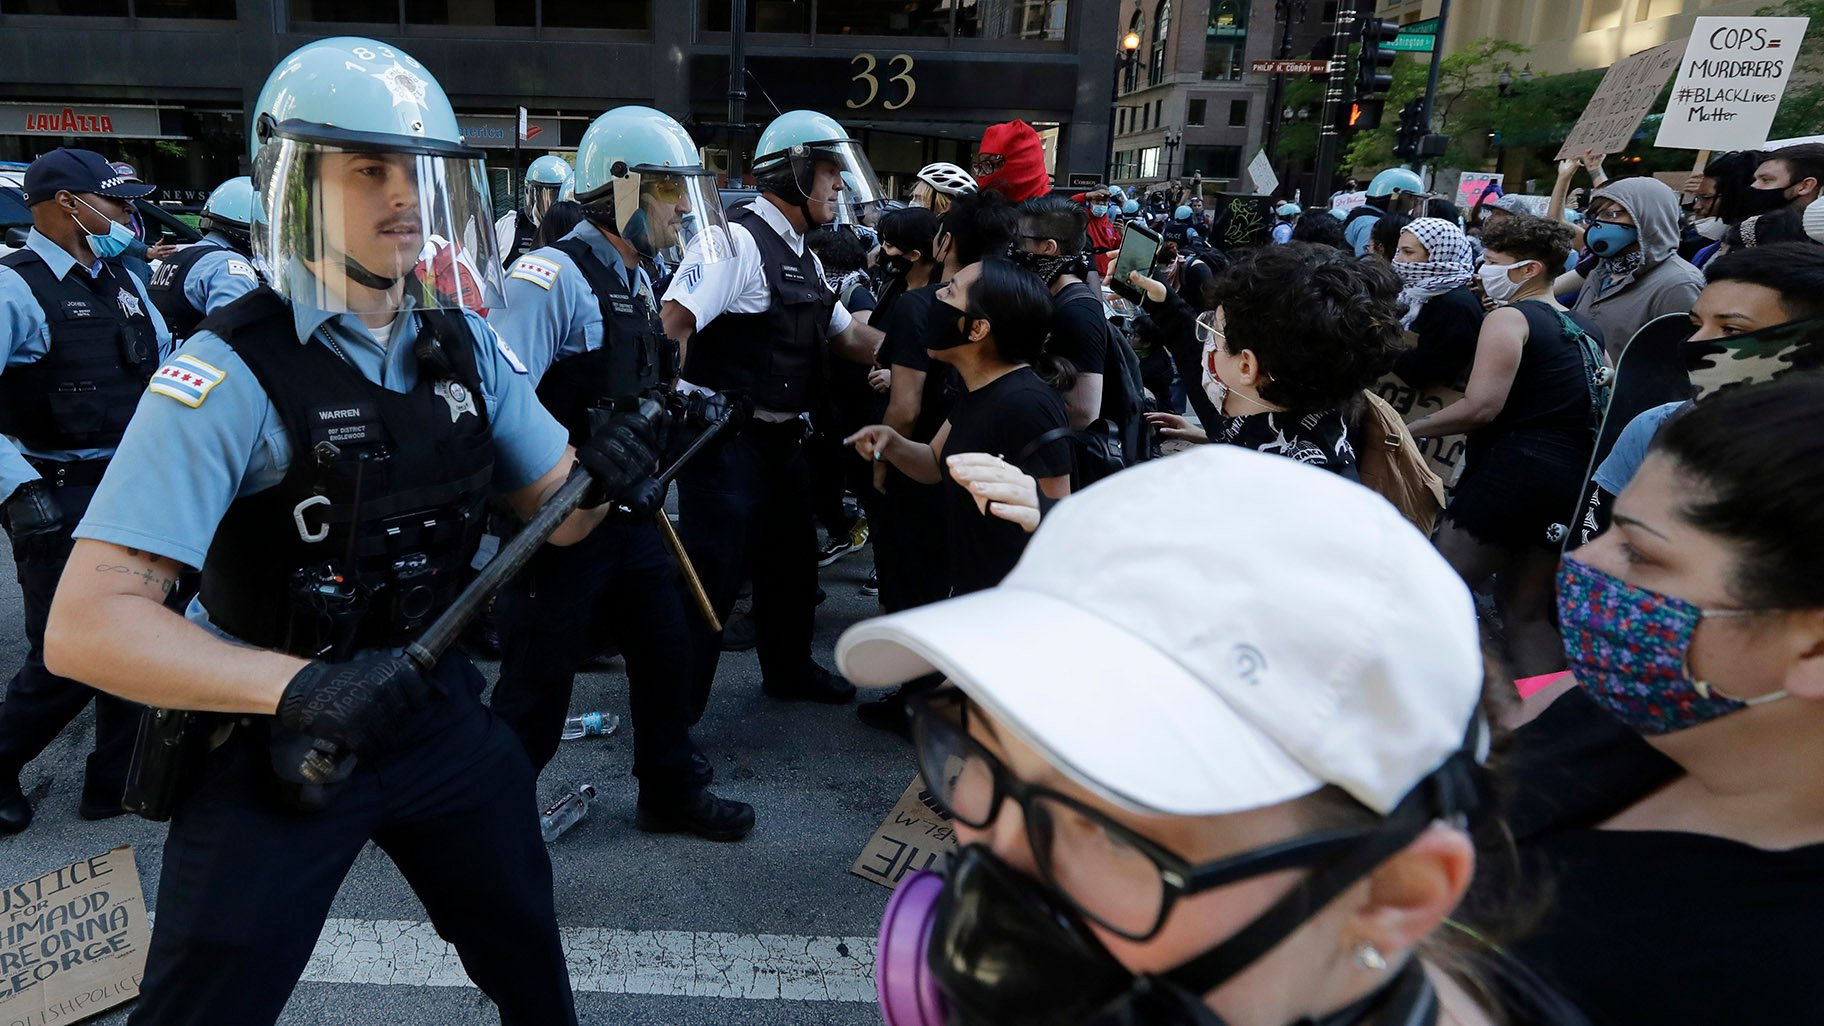 George Floyd Protests 1 258 Arrested 130 Police Officers Injured In Chicago Chicago News Wttw